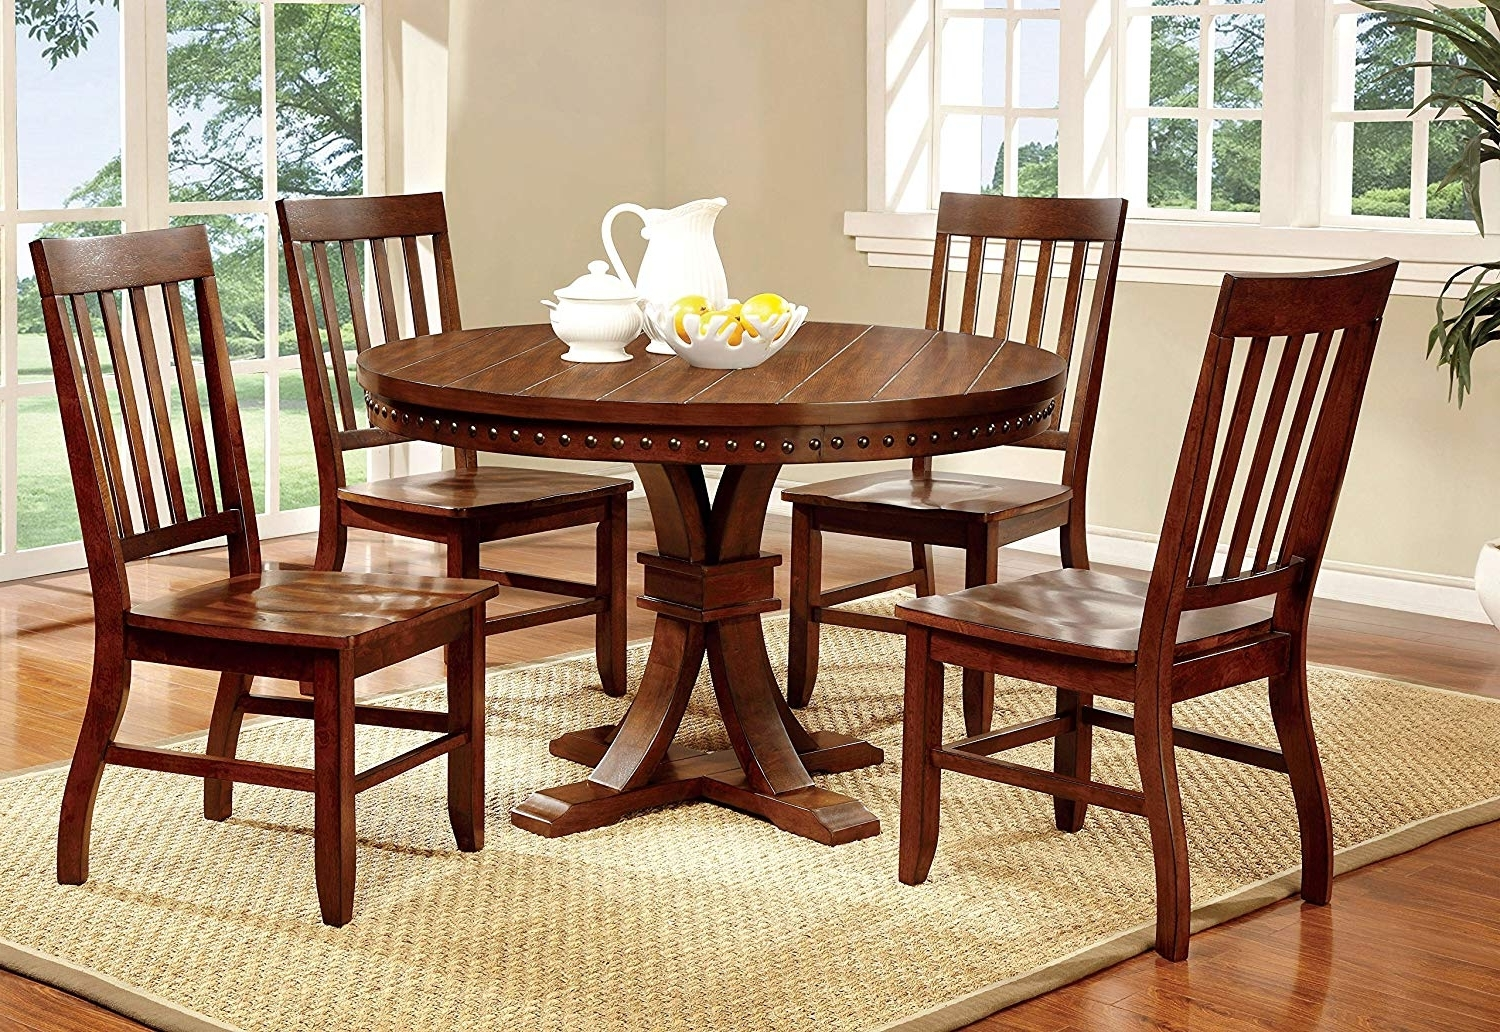 Widely Used Dining Tables Sets Throughout Amazon – Furniture Of America Castile 5 Piece Transitional Round (View 8 of 25)